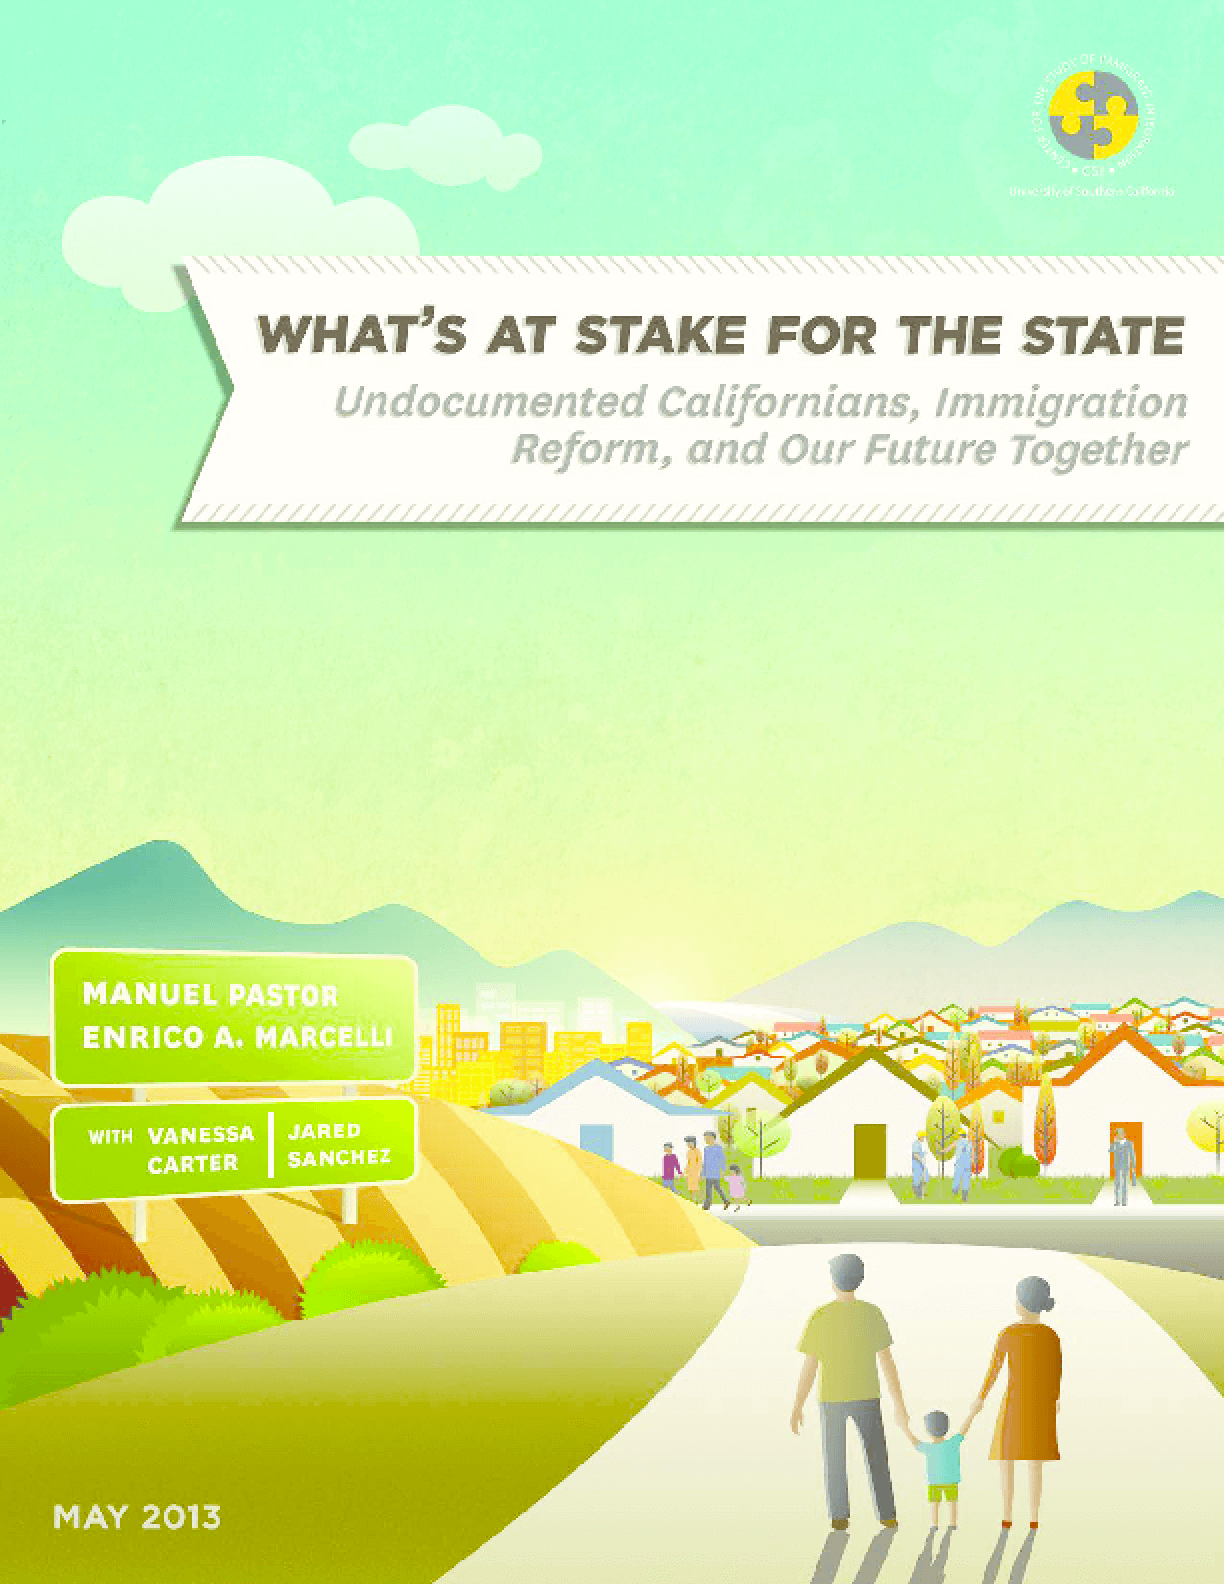 What's at Stake for the State: Undocumented Californians, Immigration Reform, and Our Future Together